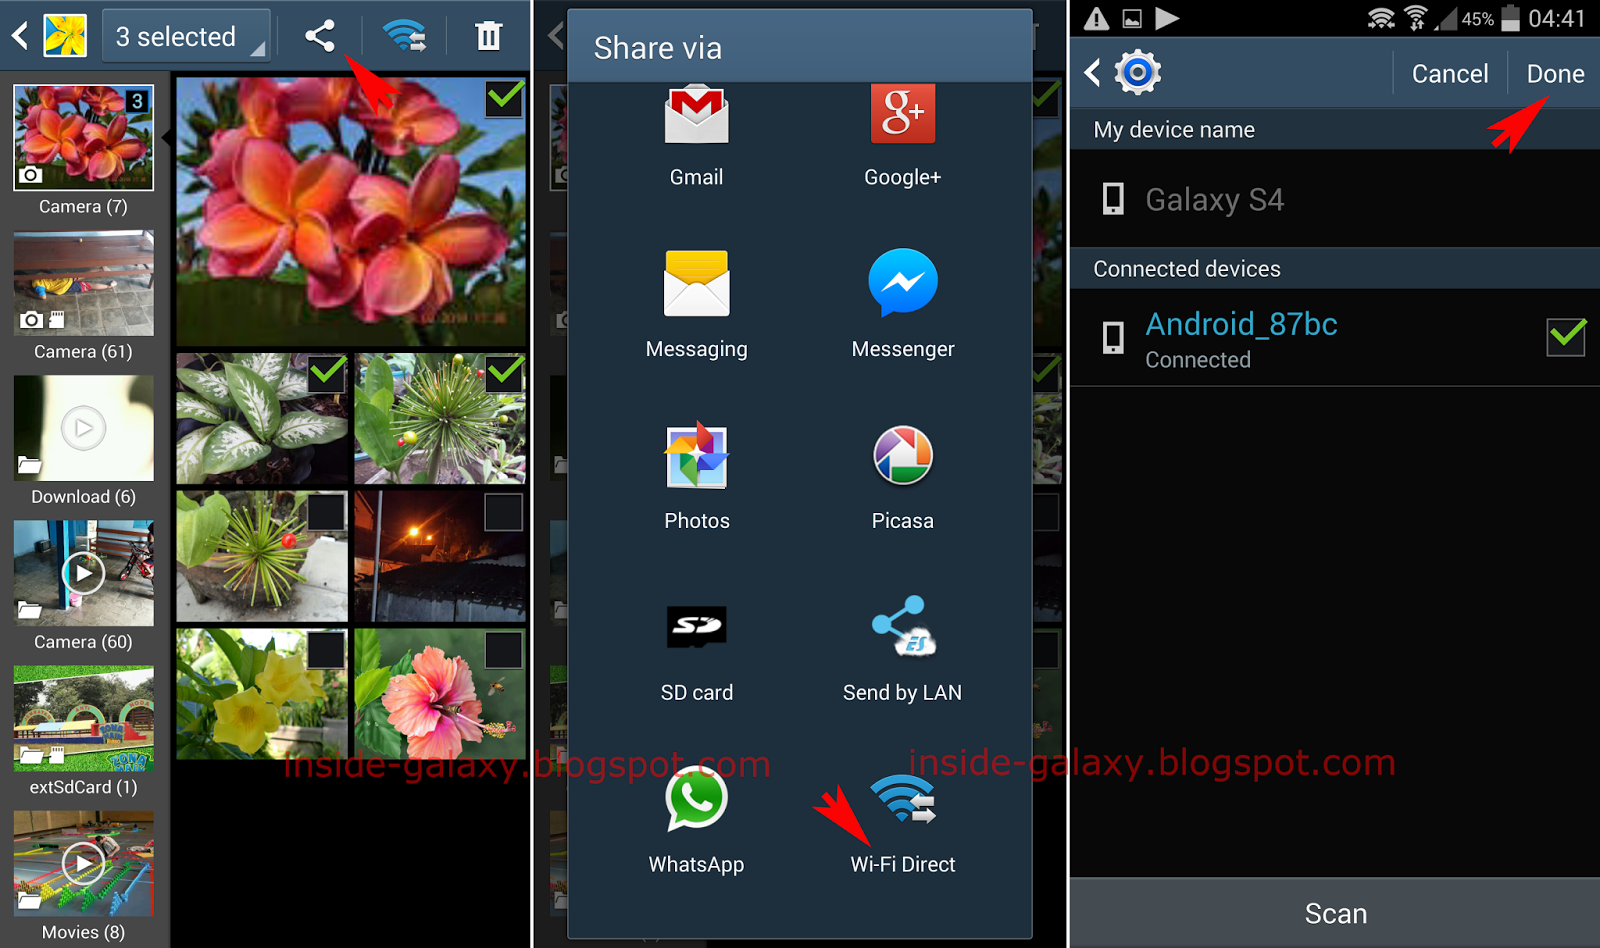 Samsung Galaxy S4: How to Enable and Use Wi-Fi Direct Feature to